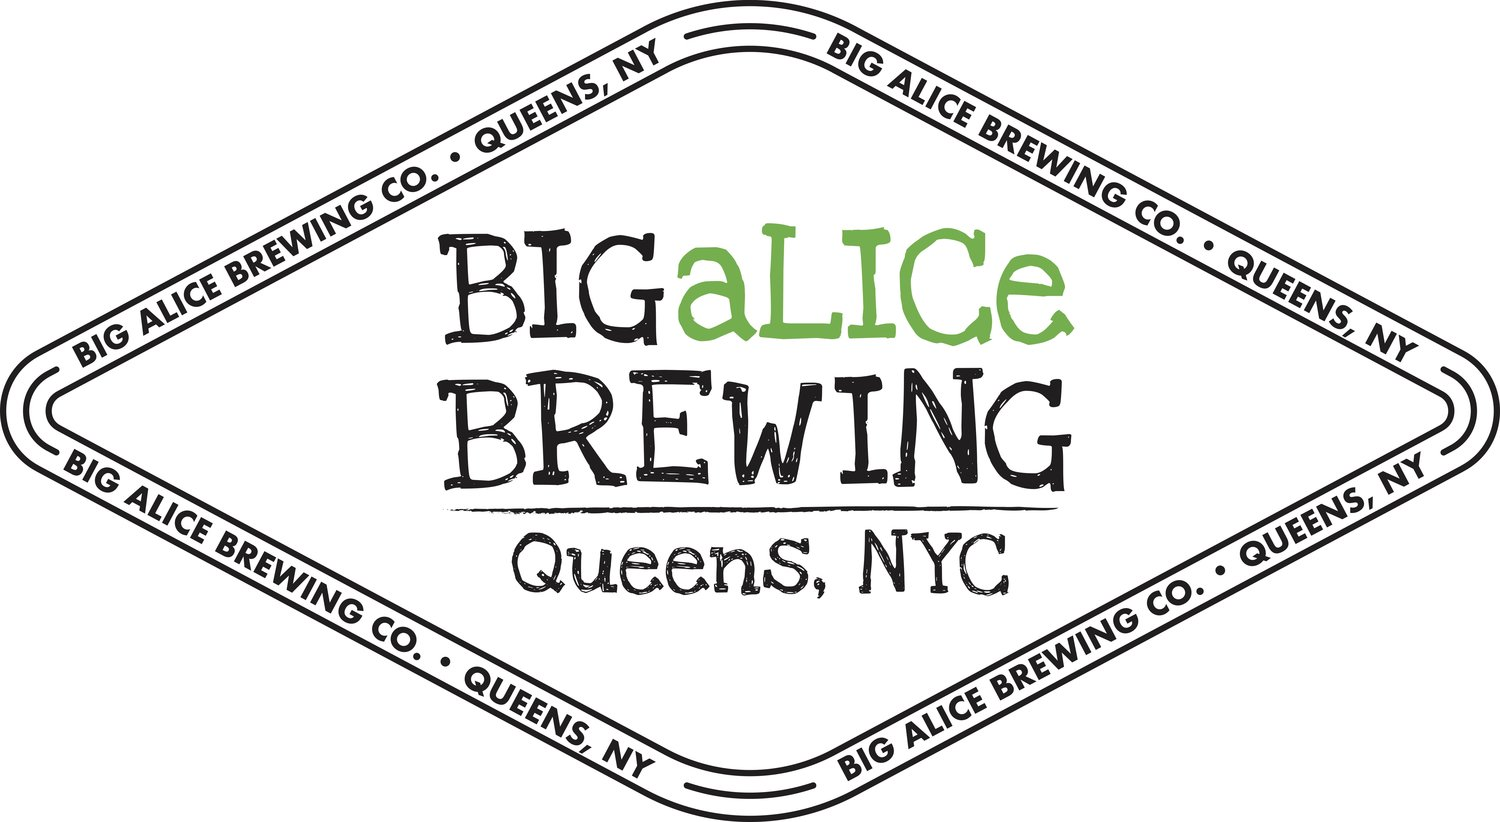 Big Alice Brewing.jpeg